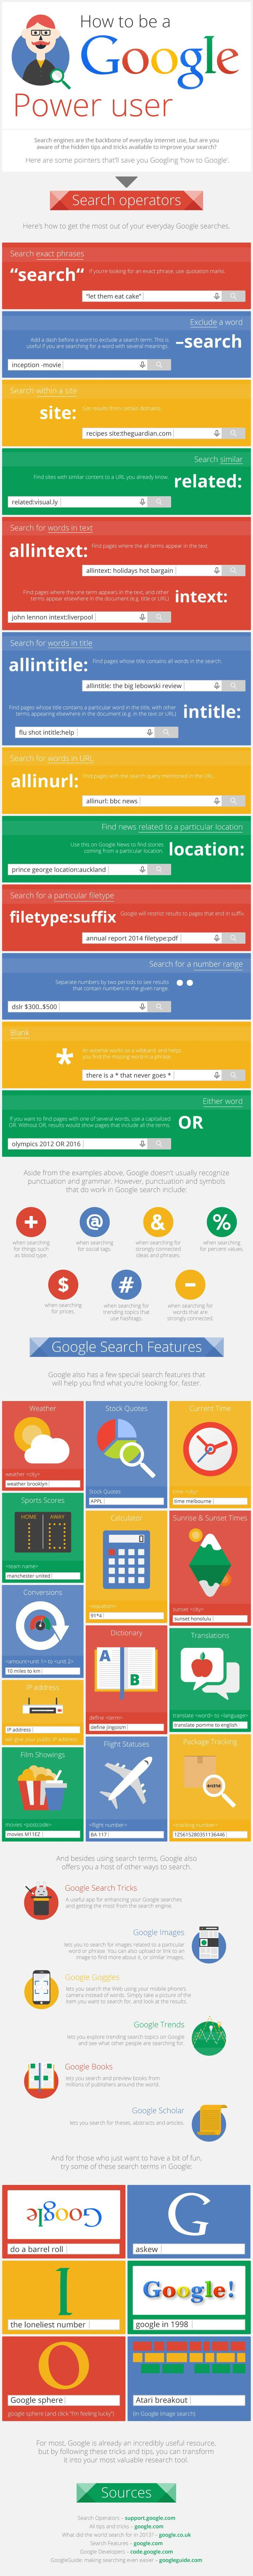 How To Get The Most Out Of Google Search